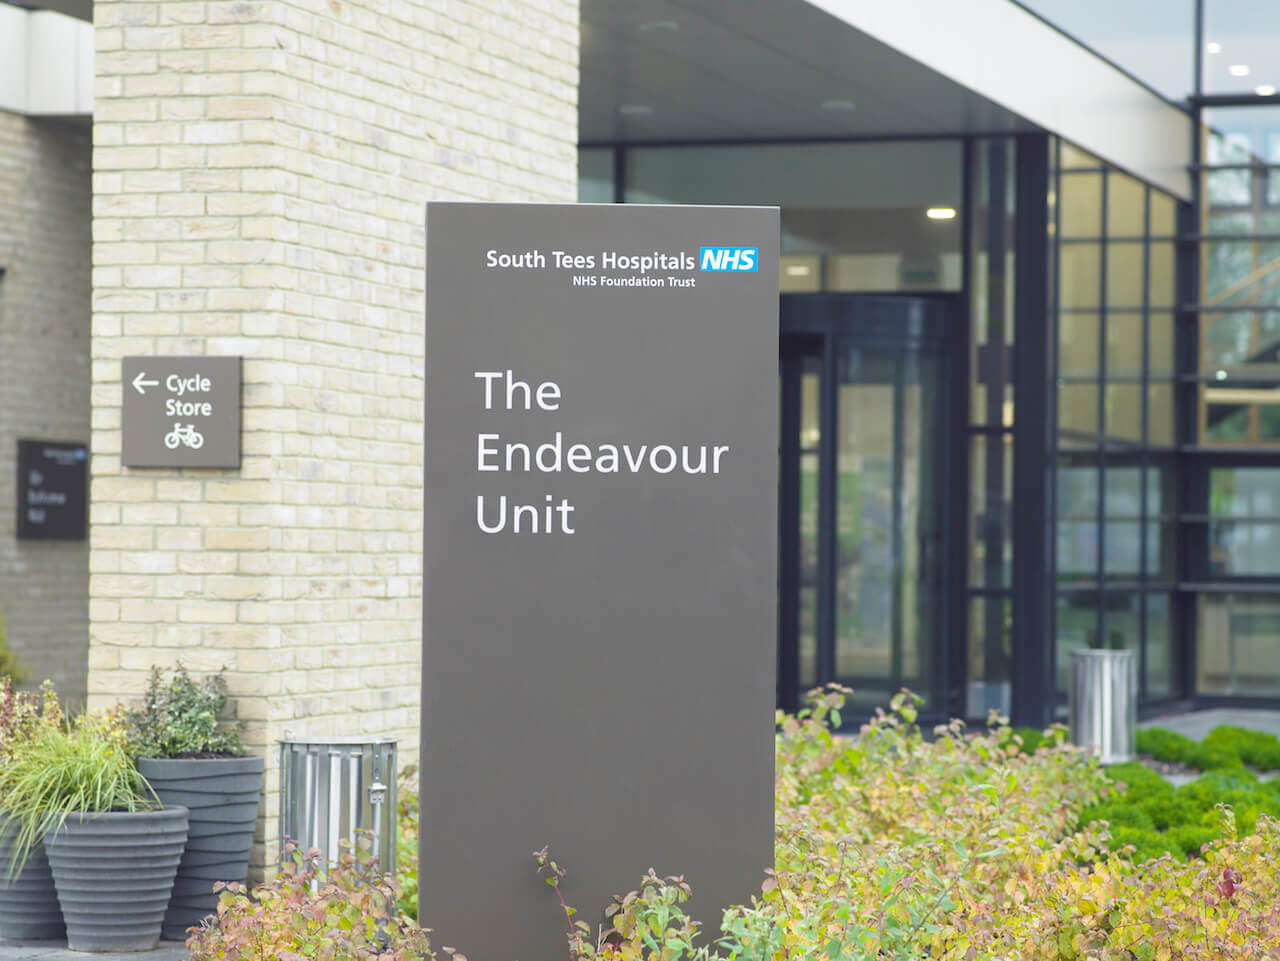 External entrance welcome sign to The Endeavour Unit